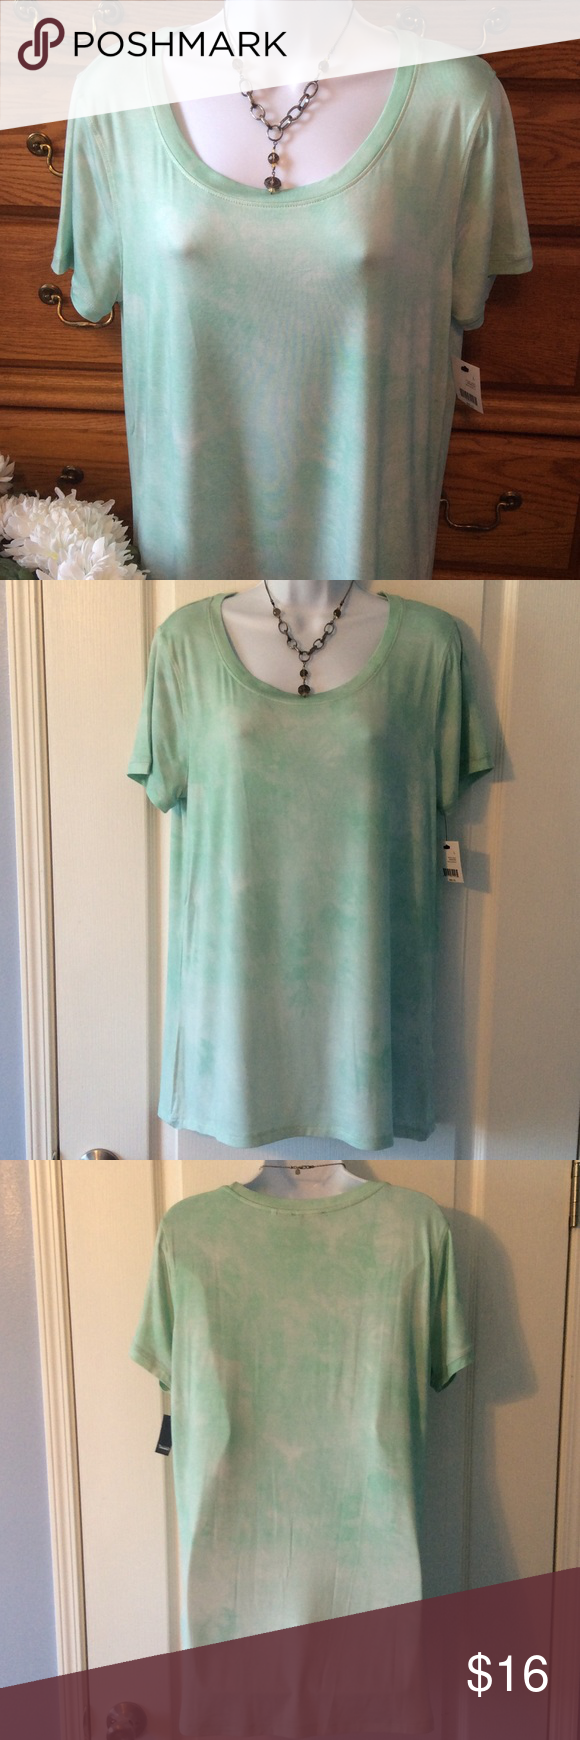 """Tahari Mint Green/White Short Sleeve Top NWT 95% viscose rayon and 5% spandex.  Brand new.  Feels like butter! So soft and comfy.  Approximately 29"""" in length and when measured from armpit to armpit it is 19"""" across.  Has nice stretch.  Color I can best describe as a mint green with touches of white going through it.  The top is called Trish Knit Dragonfly. Tahari Tops Tees - Short Sleeve"""